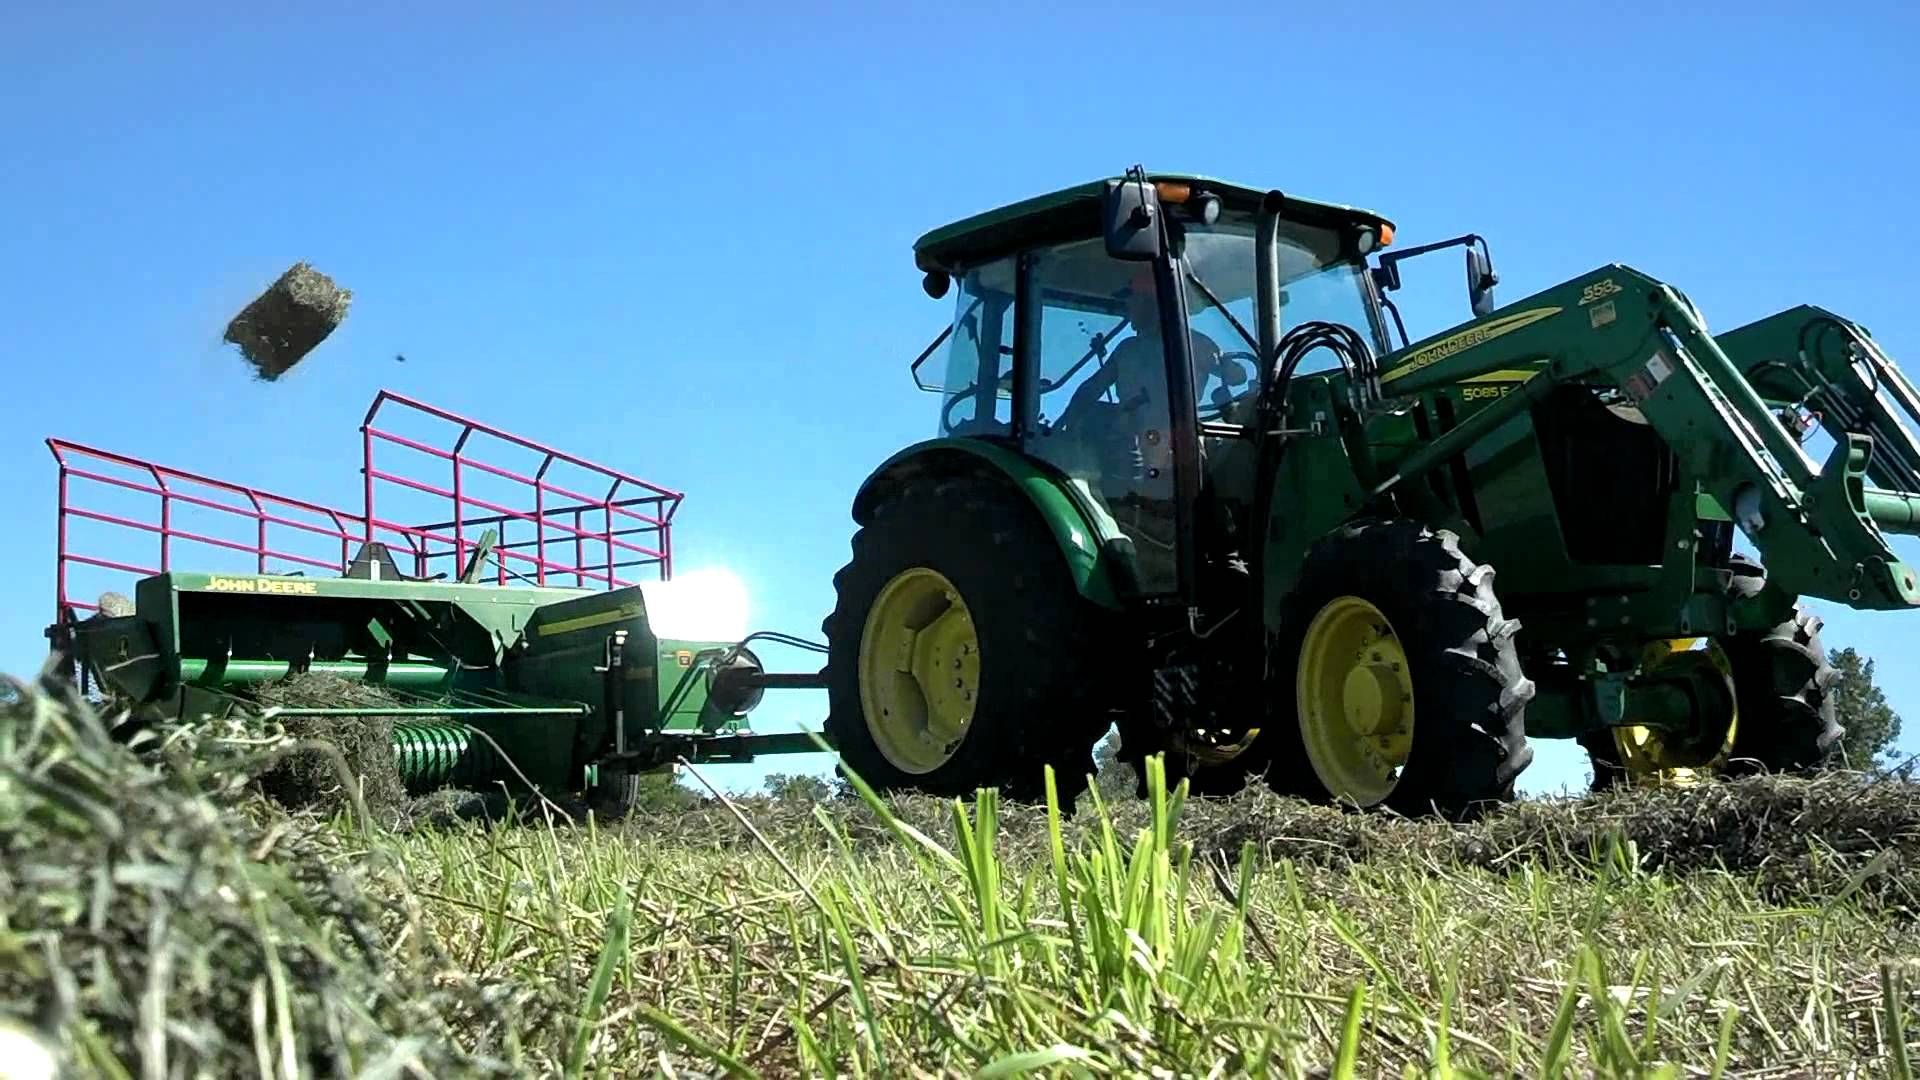 2014 2nd Crop Haybaling with John Deere 5085e, Farmall M